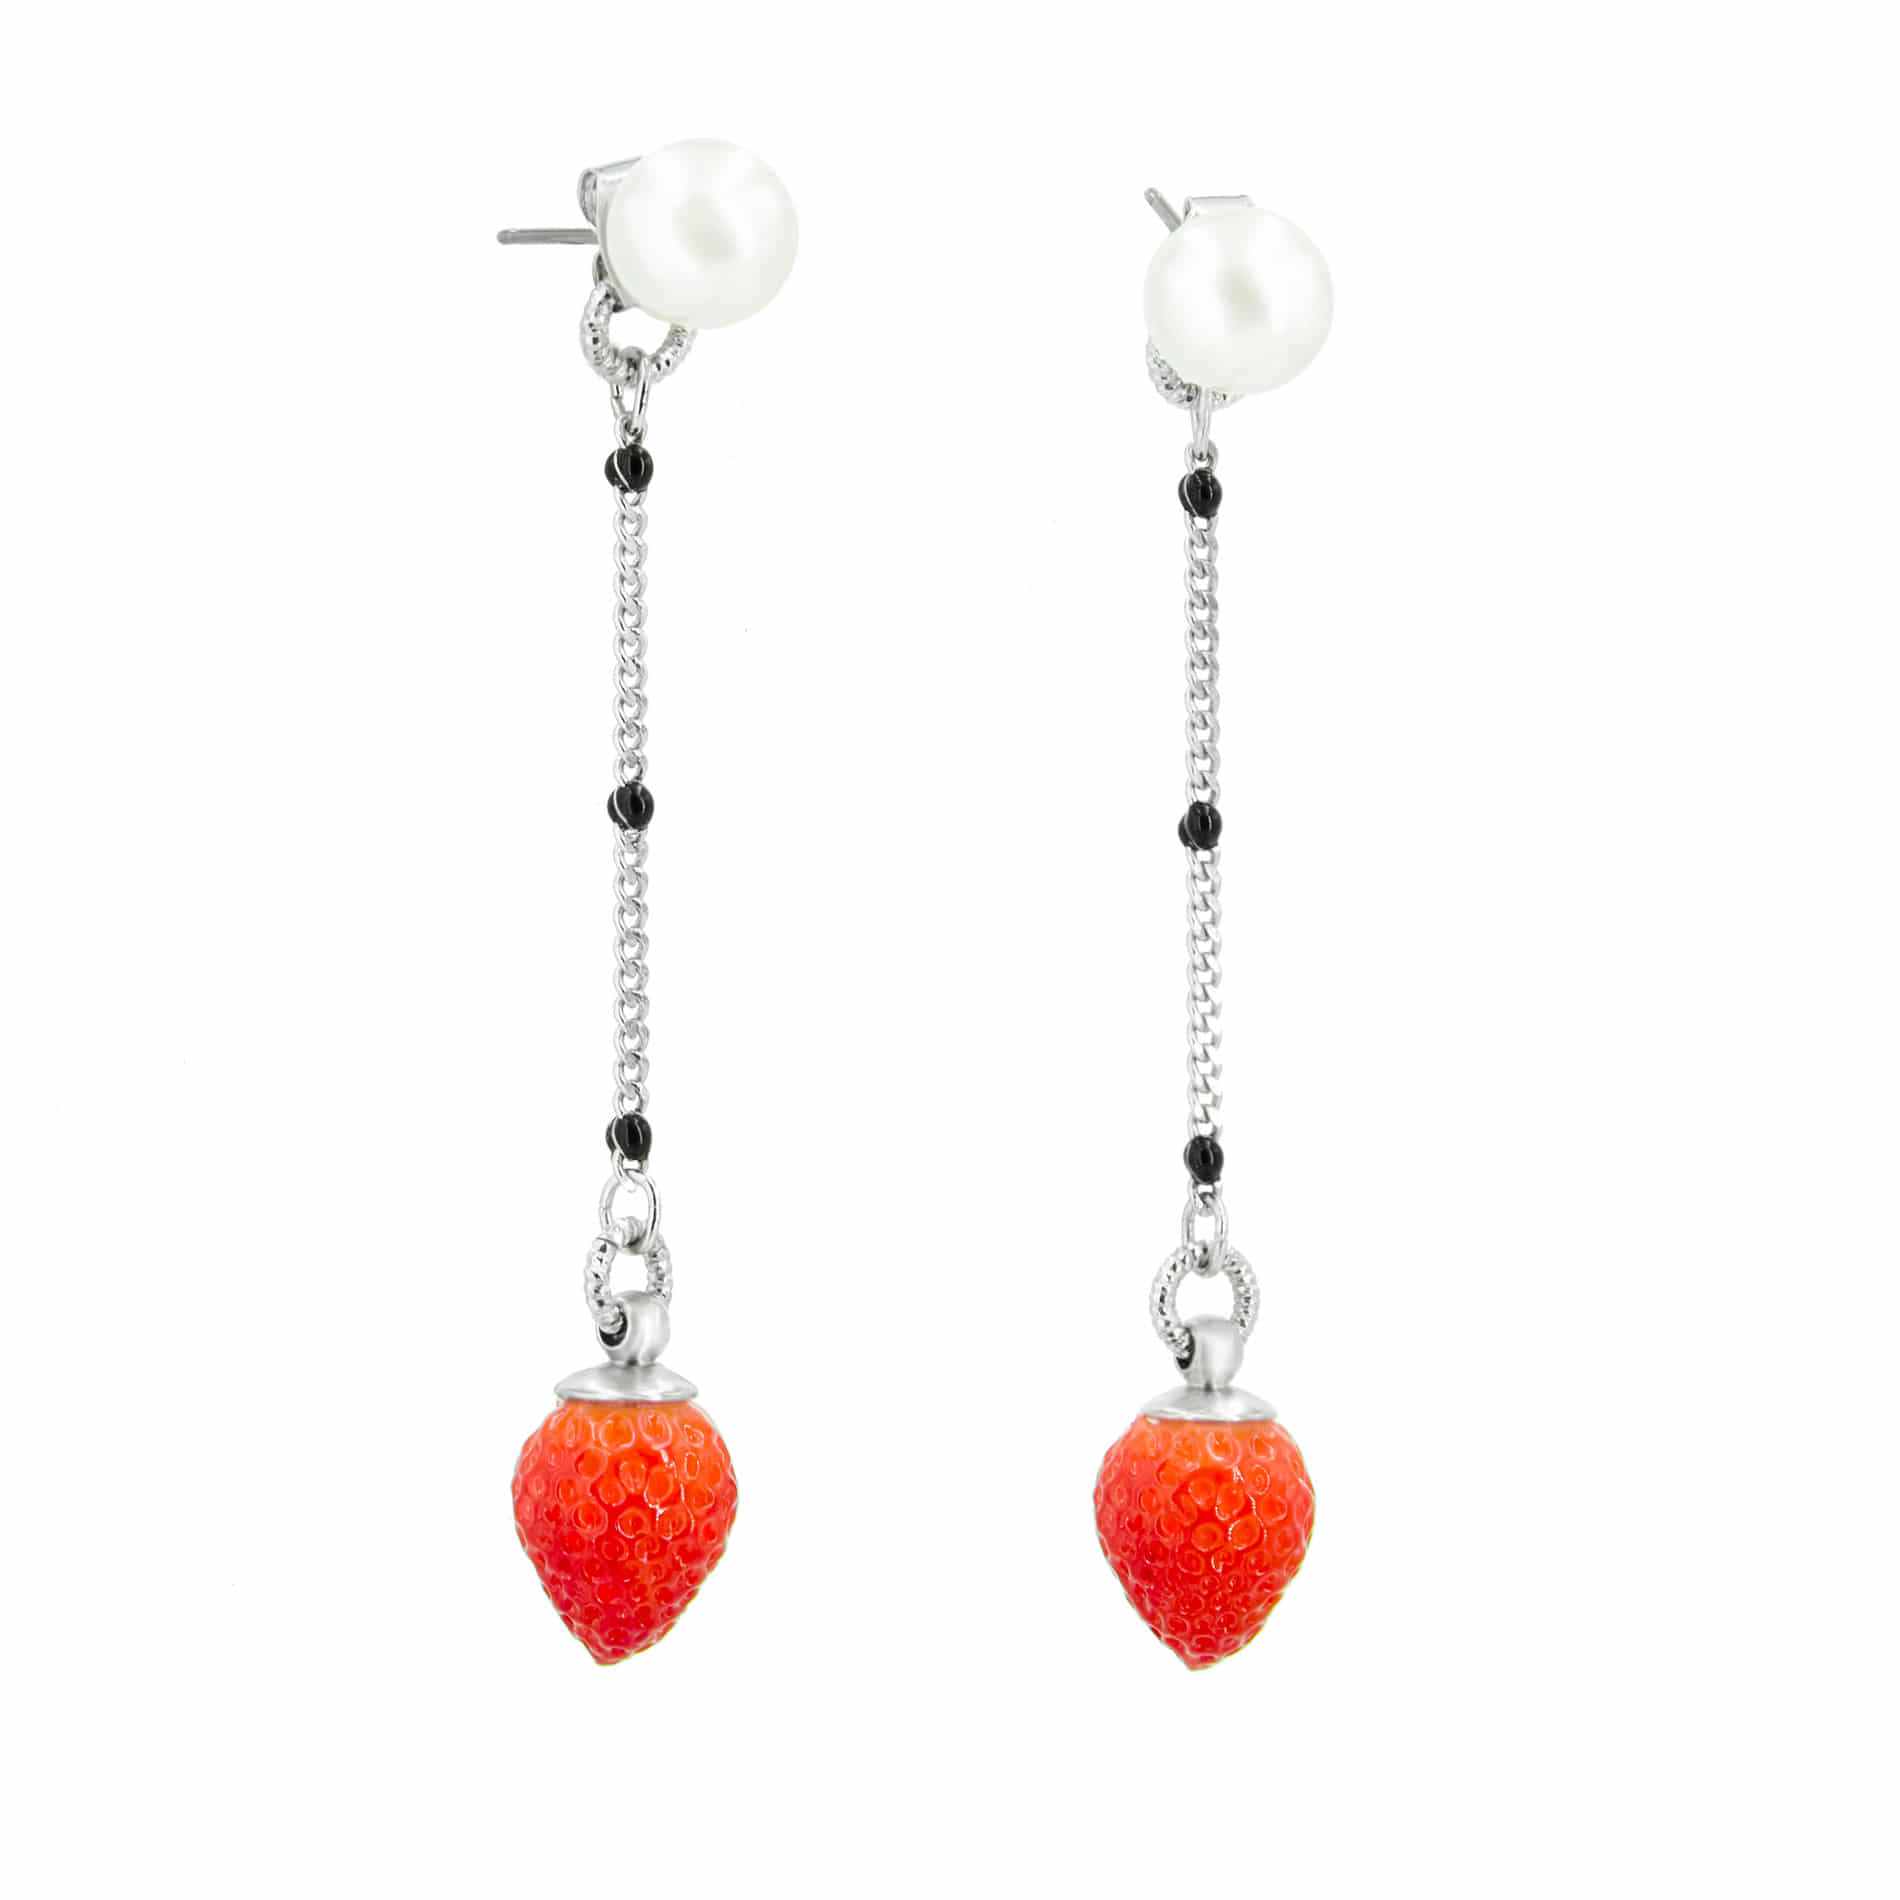 MINI STRAWBERRY DROP EARRINGS